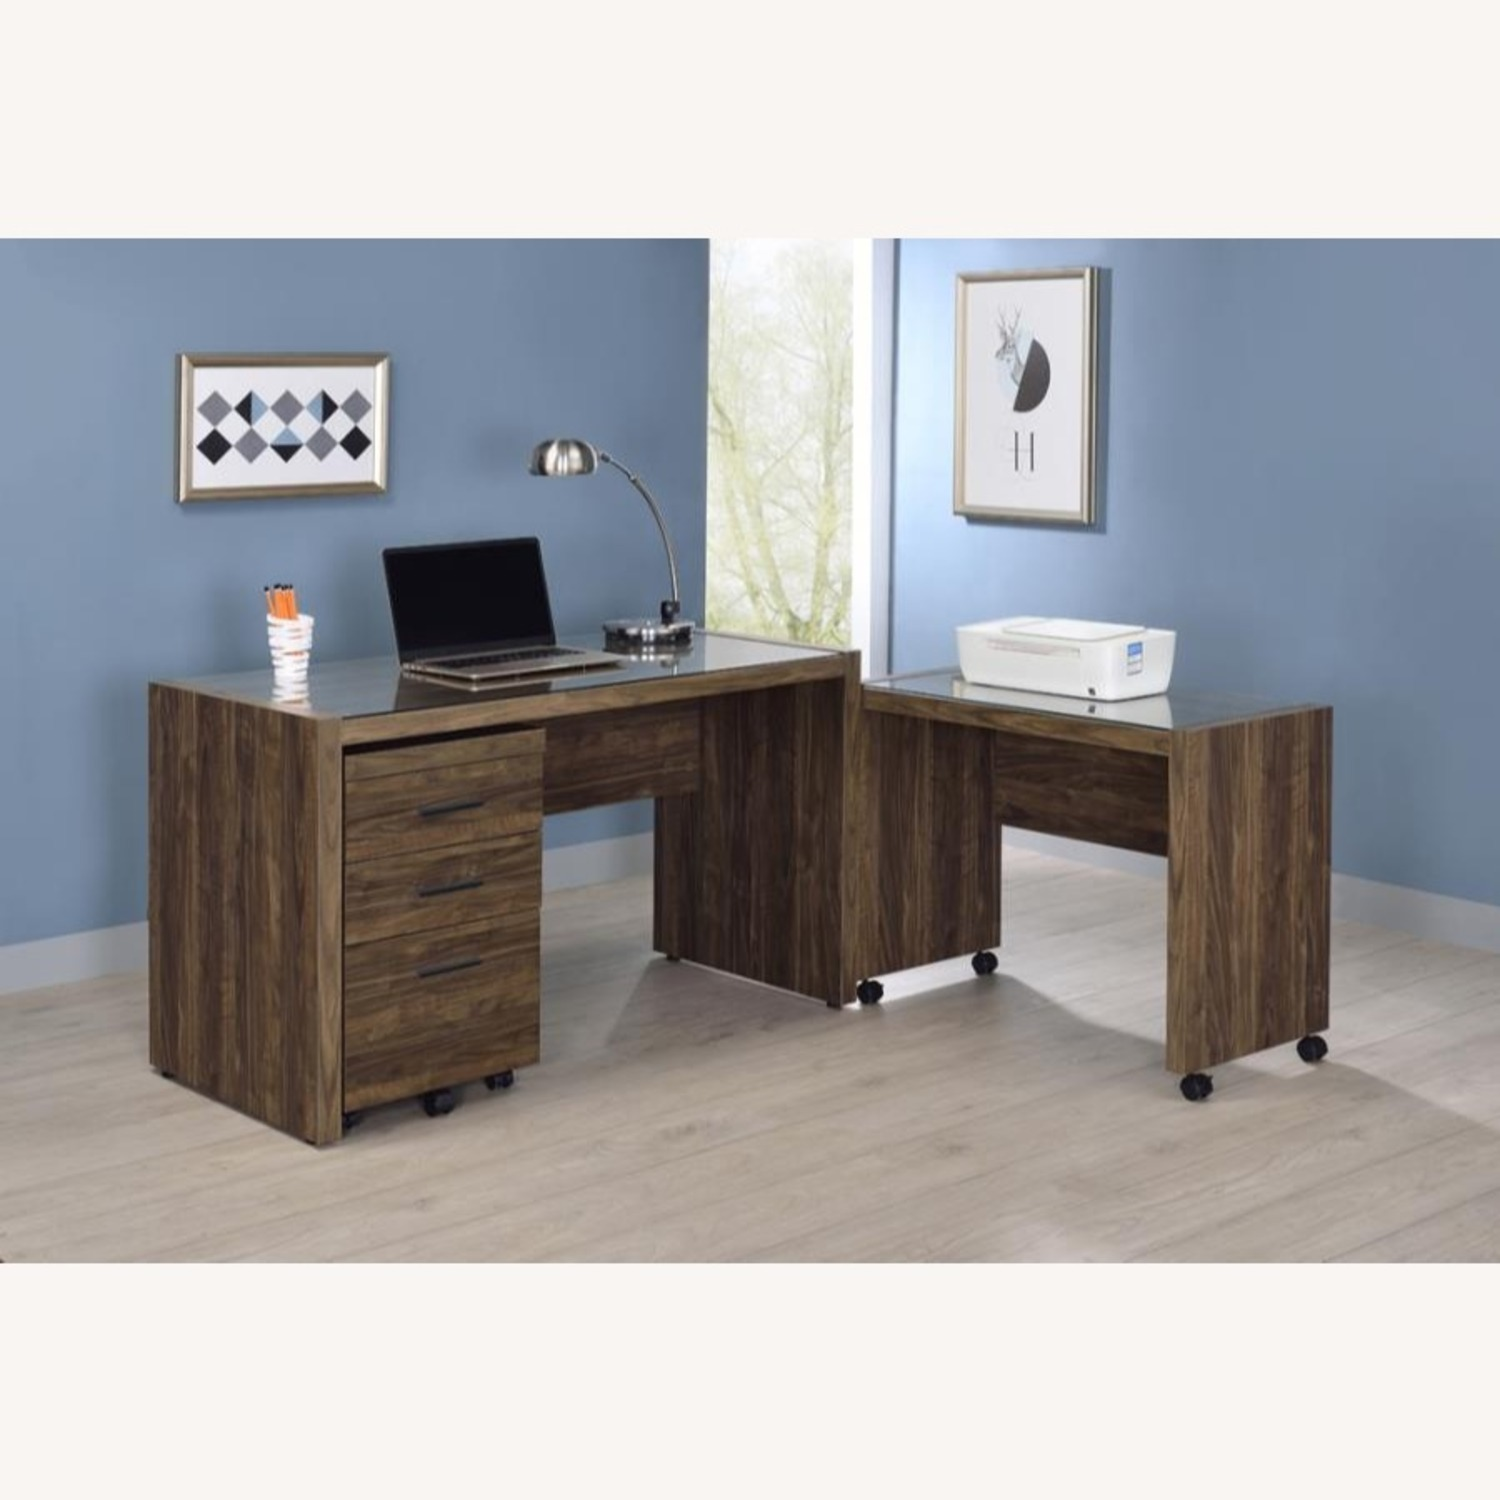 """48"""" Writing Desk In Aged Walnut W/ Tempered Glass - image-6"""